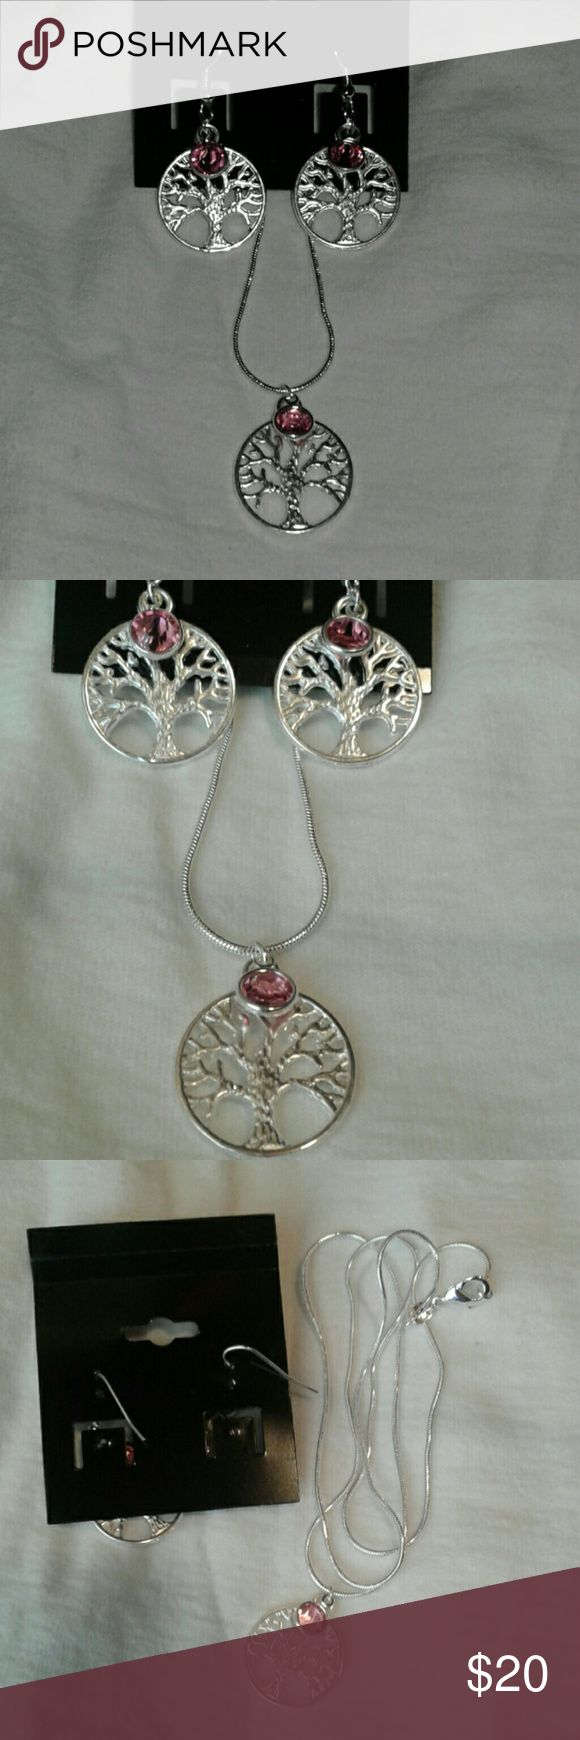 "October birthstone set Chain is real silver stamped 925, tree of life is silver tone in color with October birthstone. Chain is 22"" in length, light weight with a  very slender rope shape. Items were never worn. Jewelry Earrings"